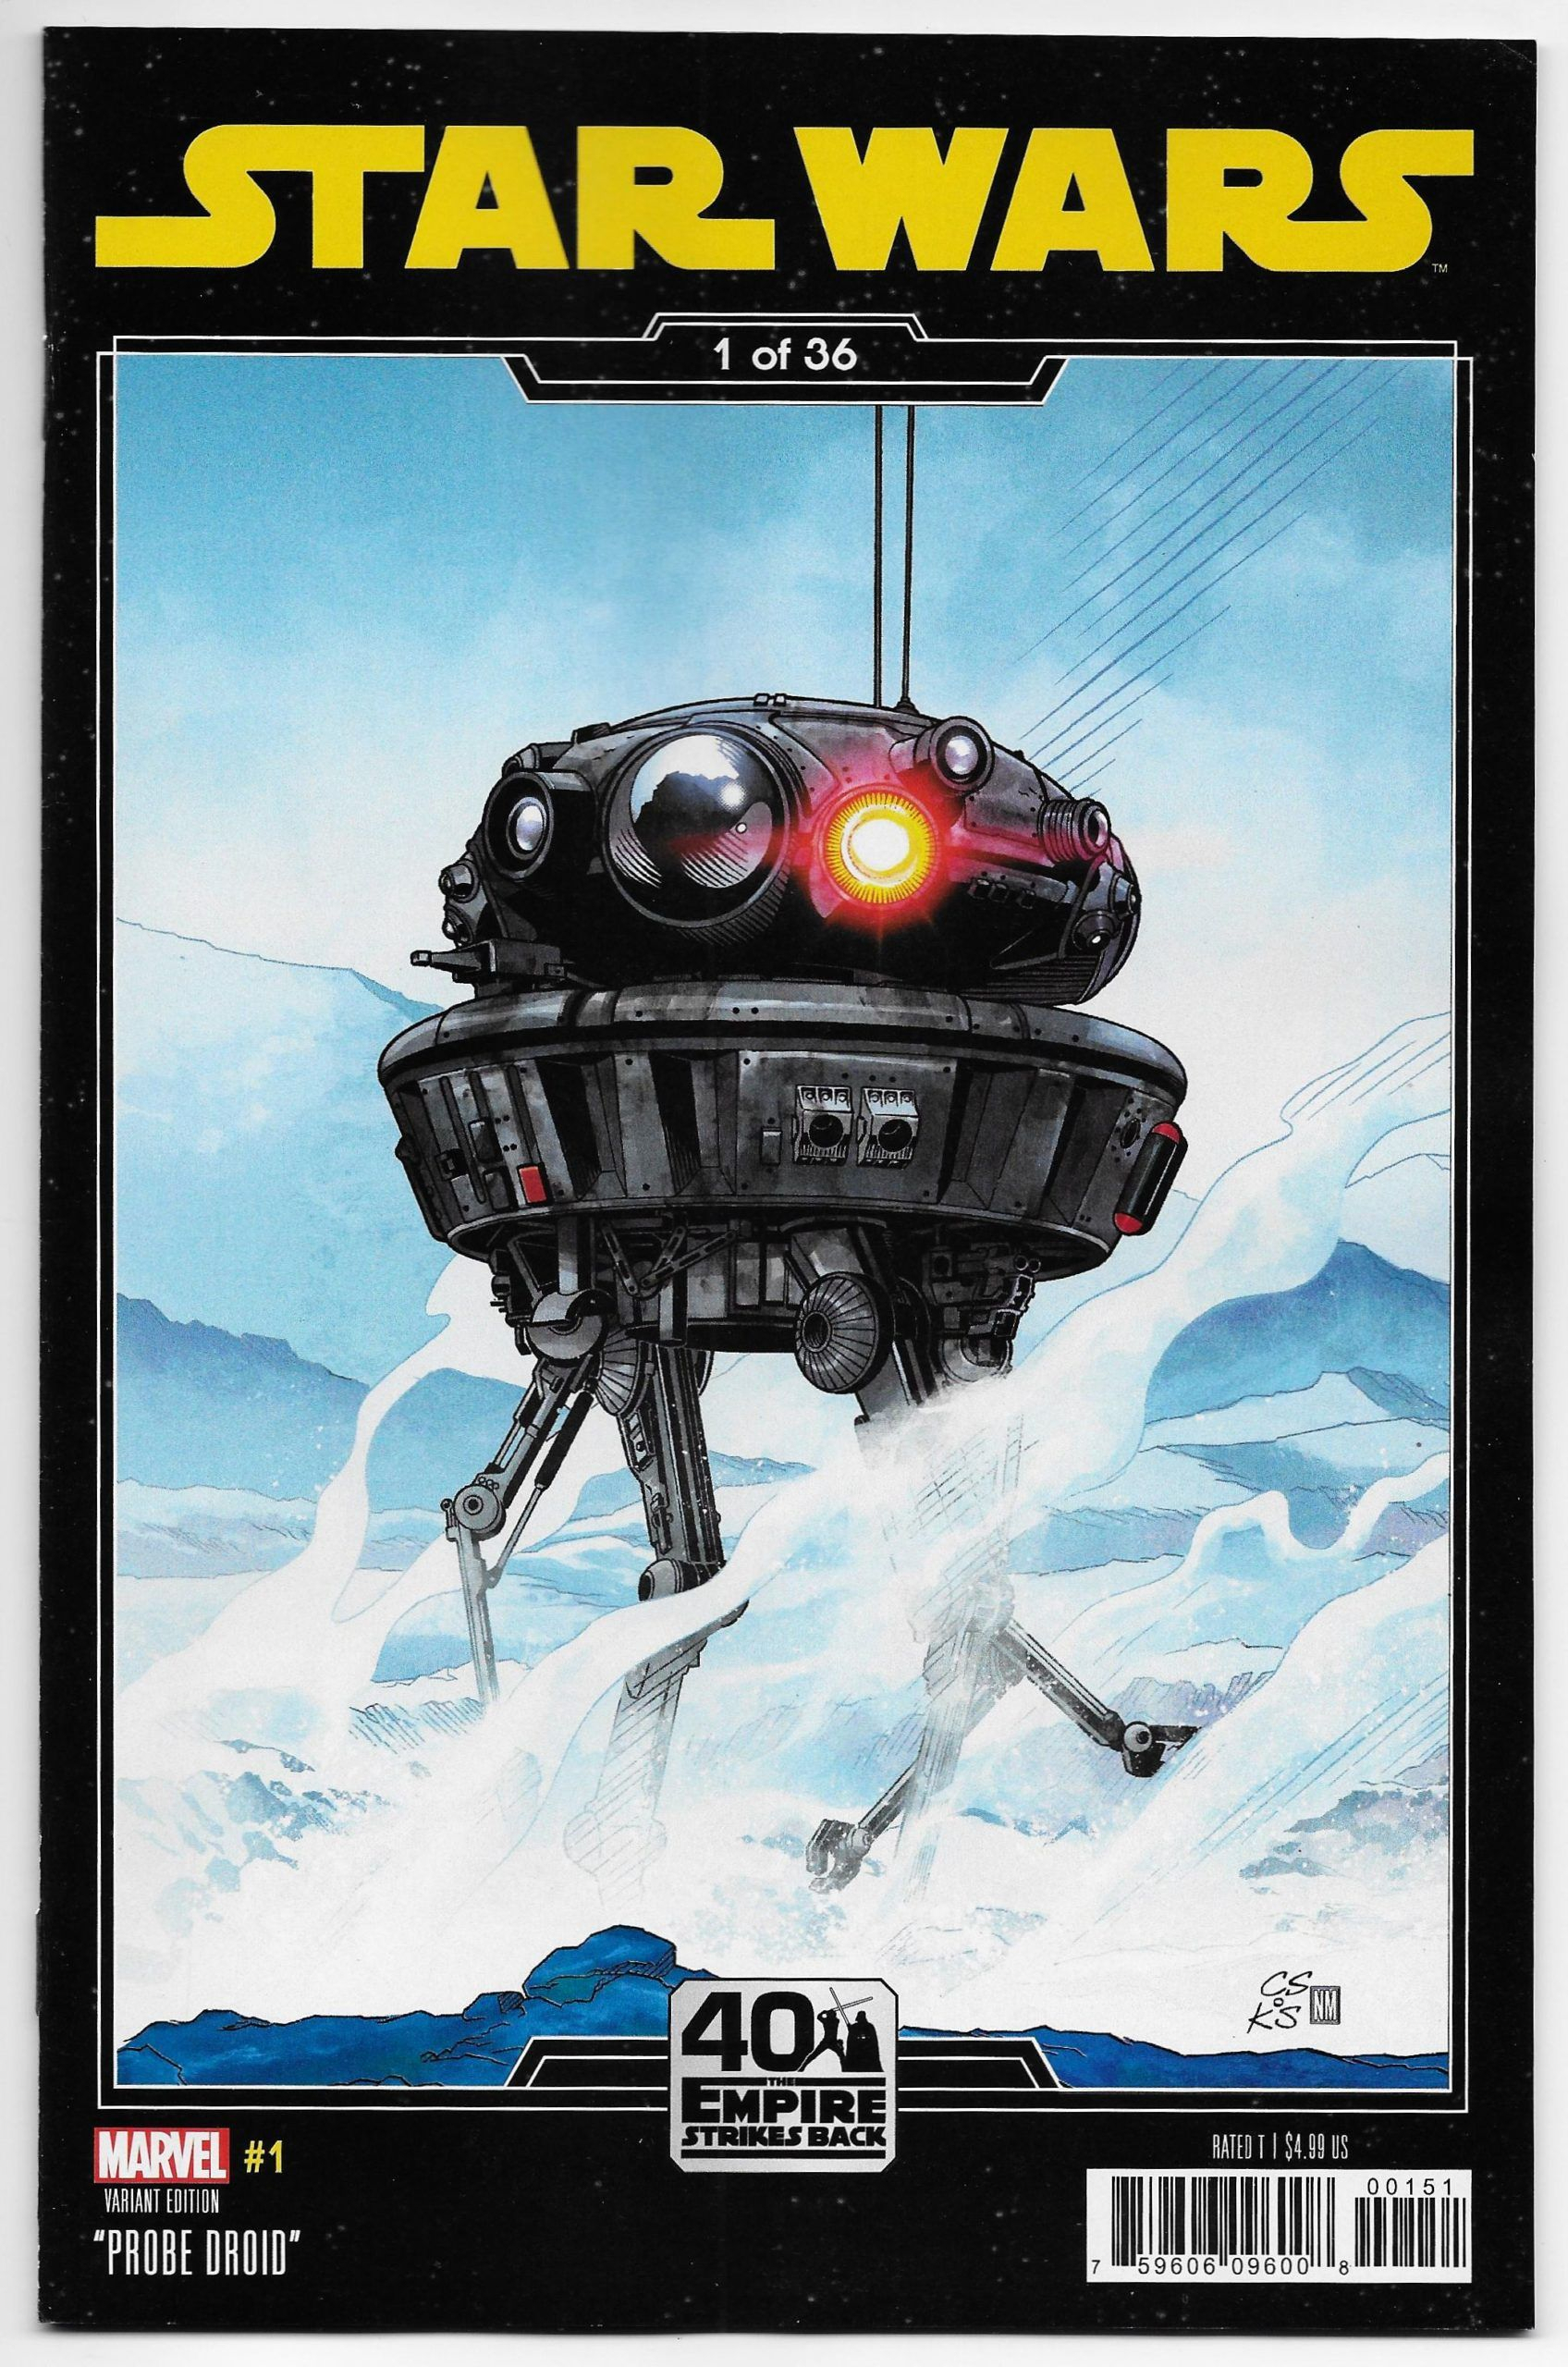 Star Wars #1 Empire Strikes Back 40Th Anniversary Variant with Empires And Puzzles Events 2020